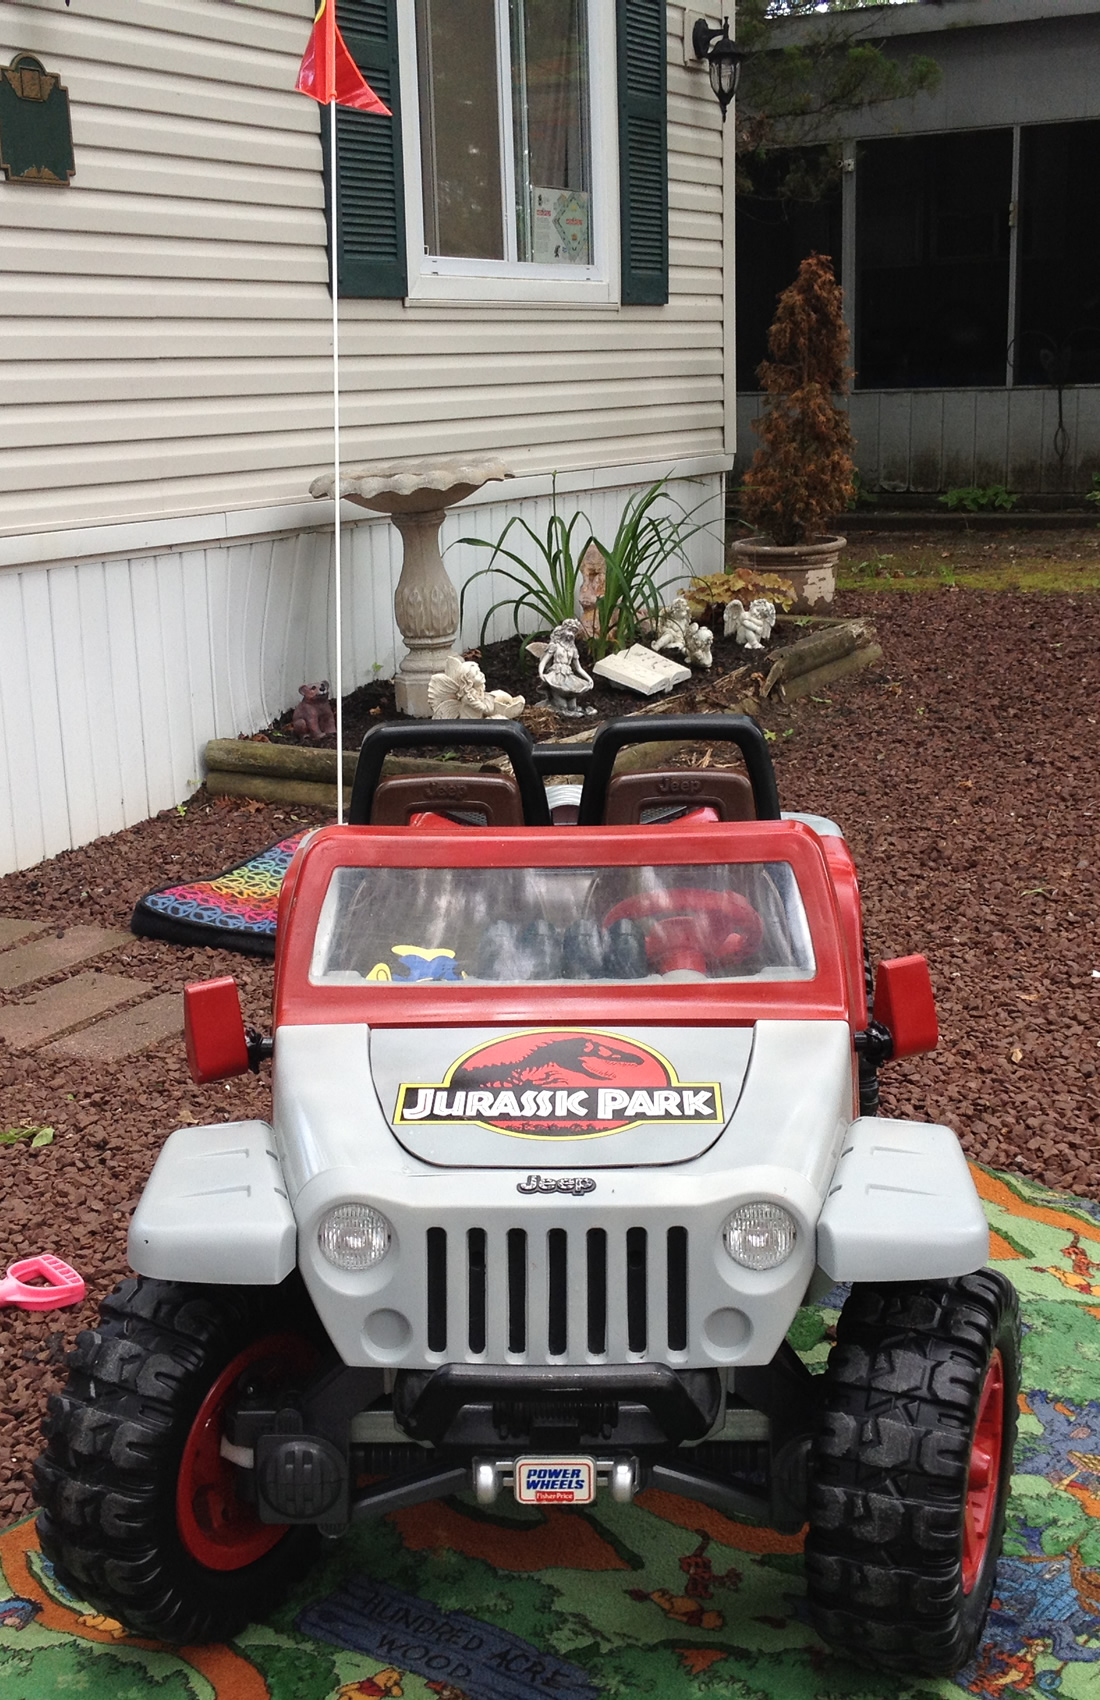 Jurassic Park Jeep Hurricane Page 2 Modifiedpowerwheelscom Modified Power Wheels Gaucho Need Help This Is Not Including The Respirator Heater For Winter Or Plastic Sheet Enclosing A General Paint Parts Cost